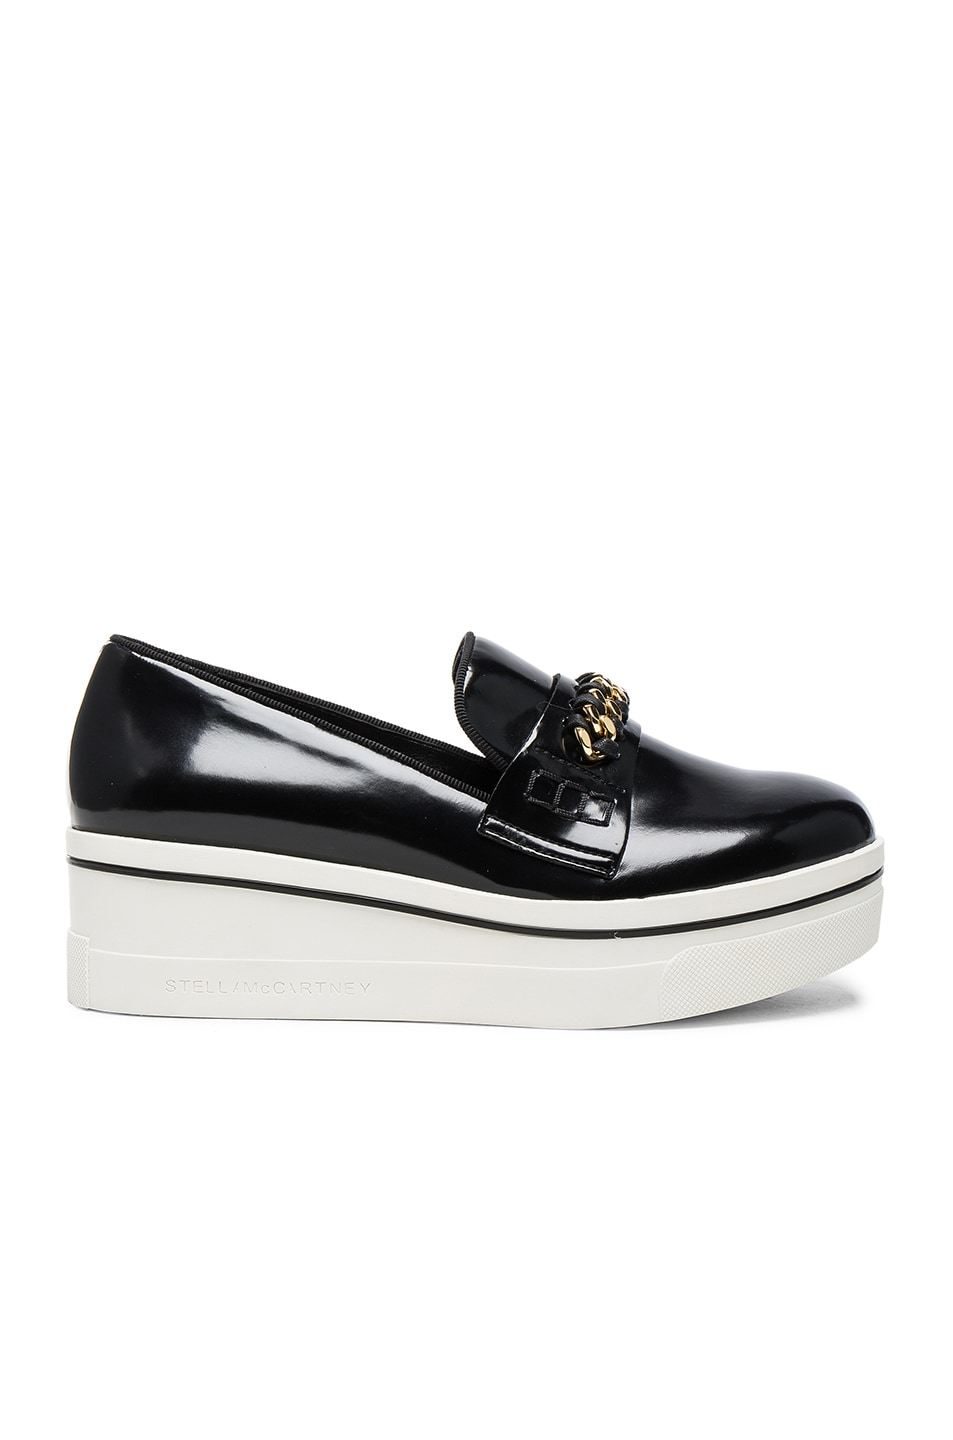 Image 1 of Stella McCartneyBinx Platform Loafers in Black